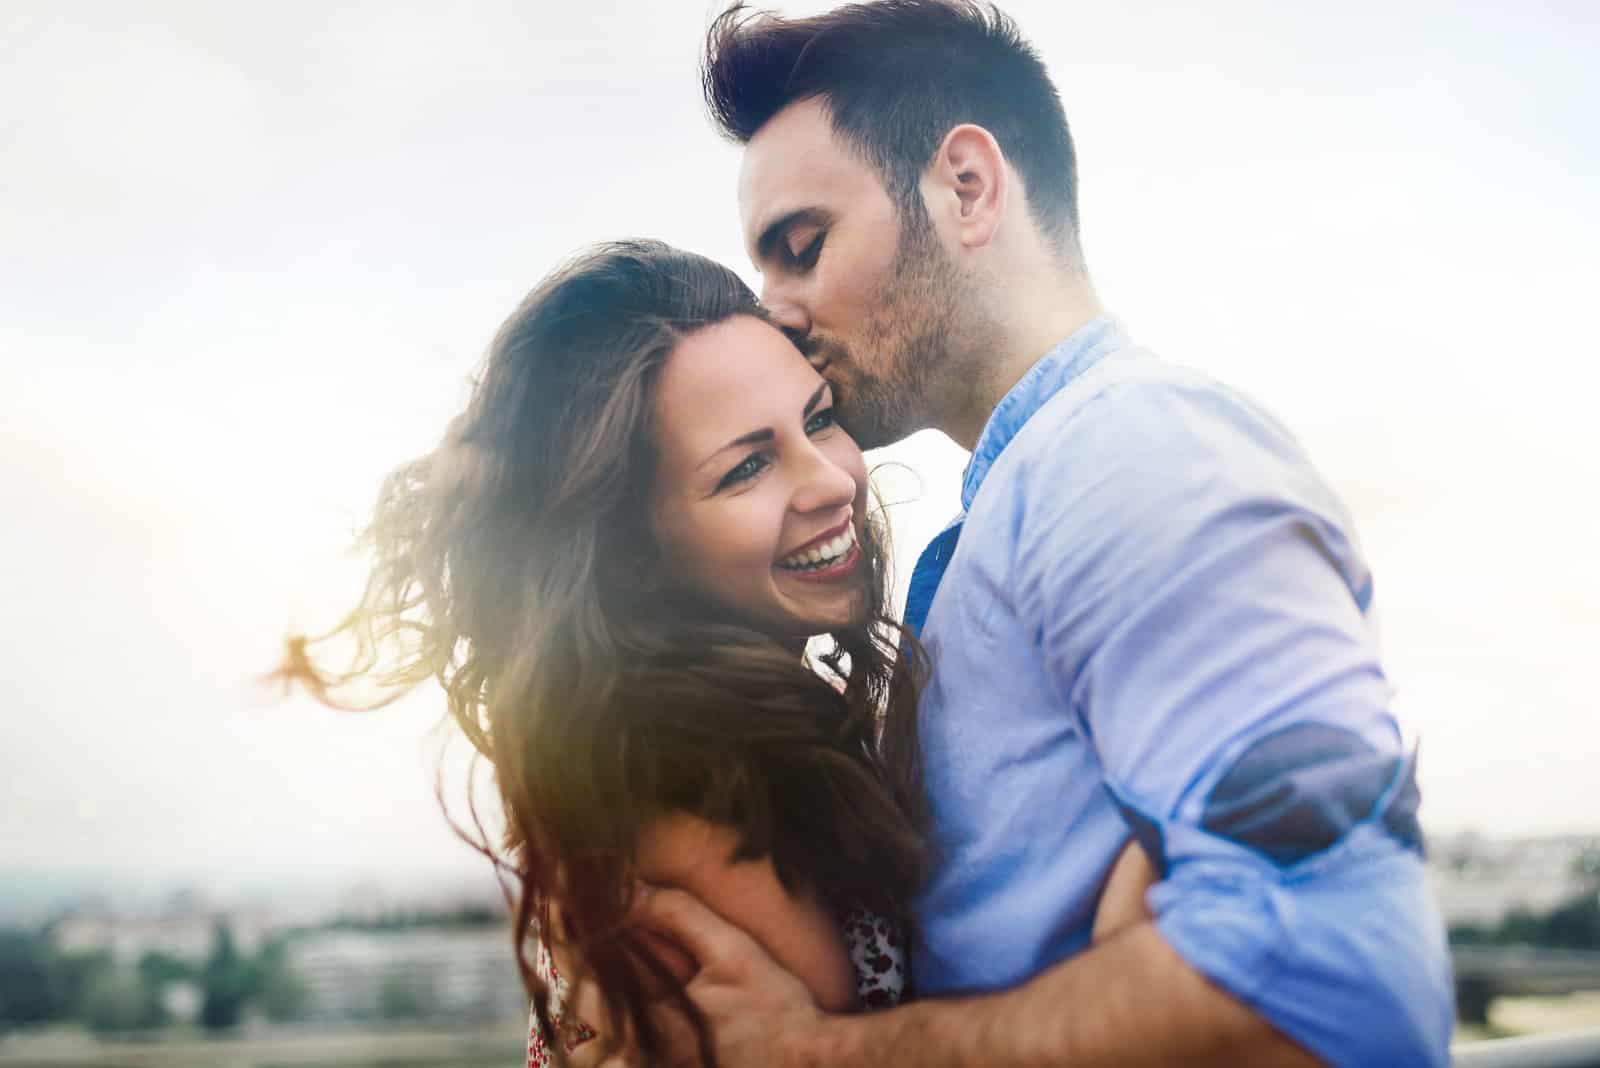 Is Love Real Or An Illusion? All You Need To Know About True Love